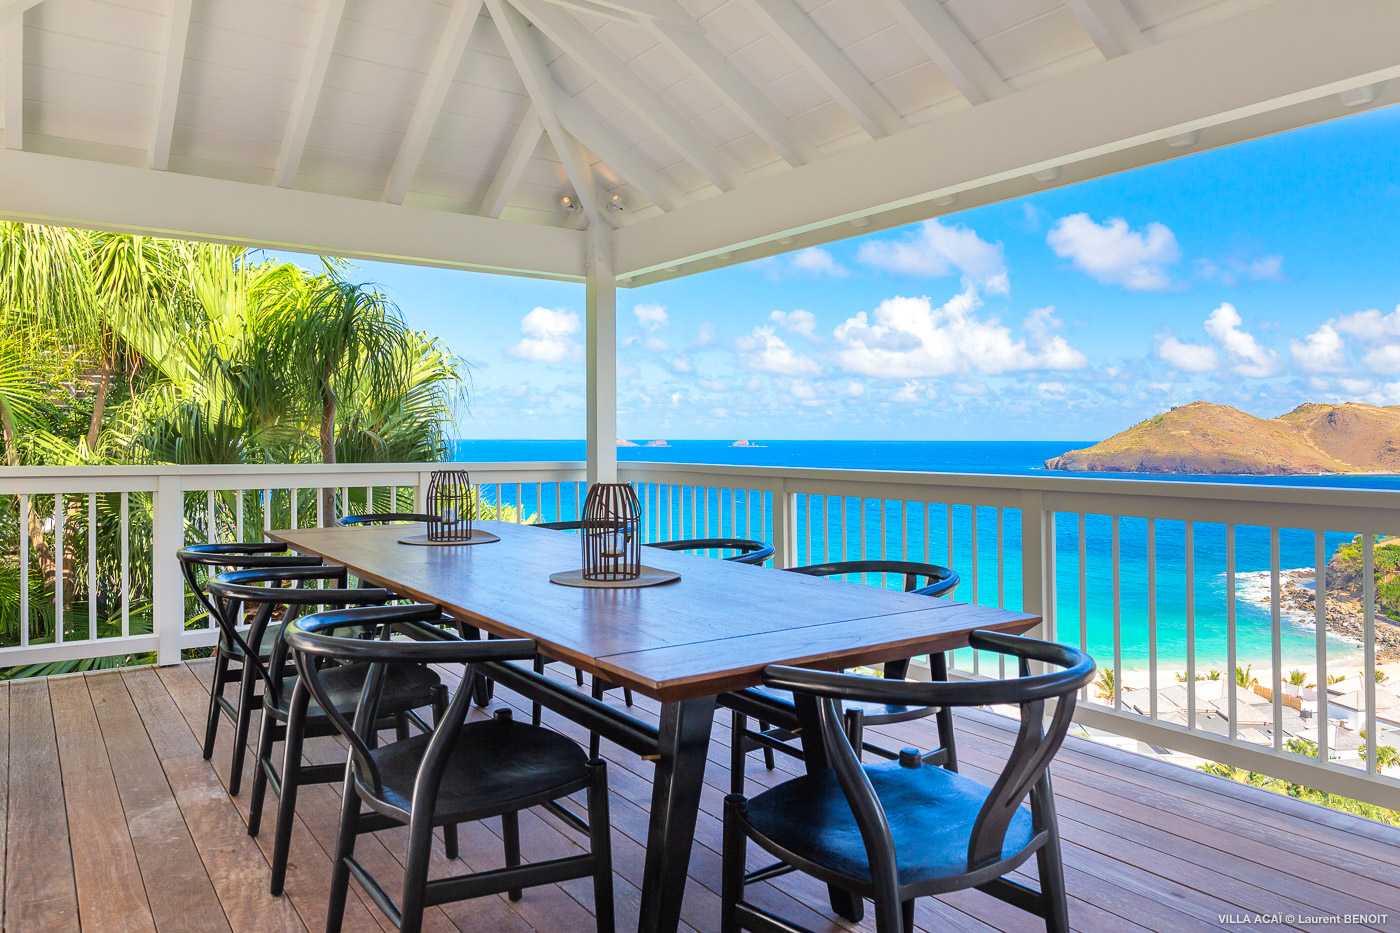 Villa Acai - Bright Villa Rental St Barth with Beautiful View on Flamands Beach - Patio with Seaview